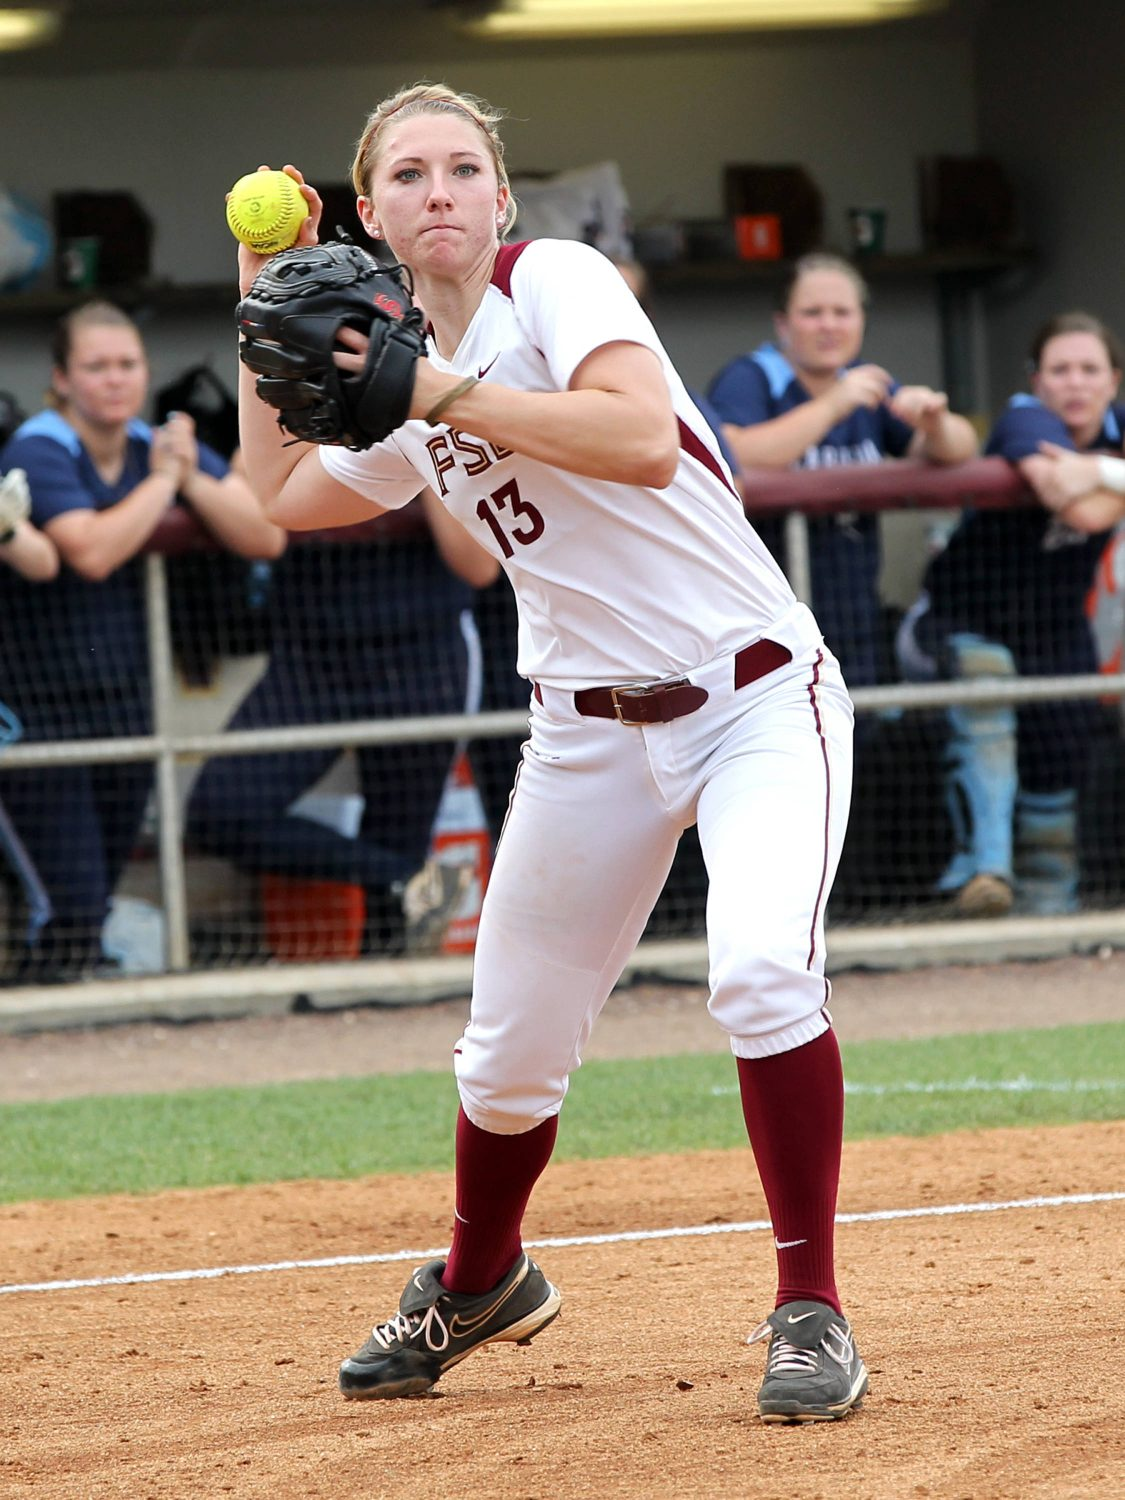 Lacey Waldrop, FSU VS NC, ACC Championship Semifinals, Tallahassee, FL,  05/10/13 . (Photo by Steve Musco)